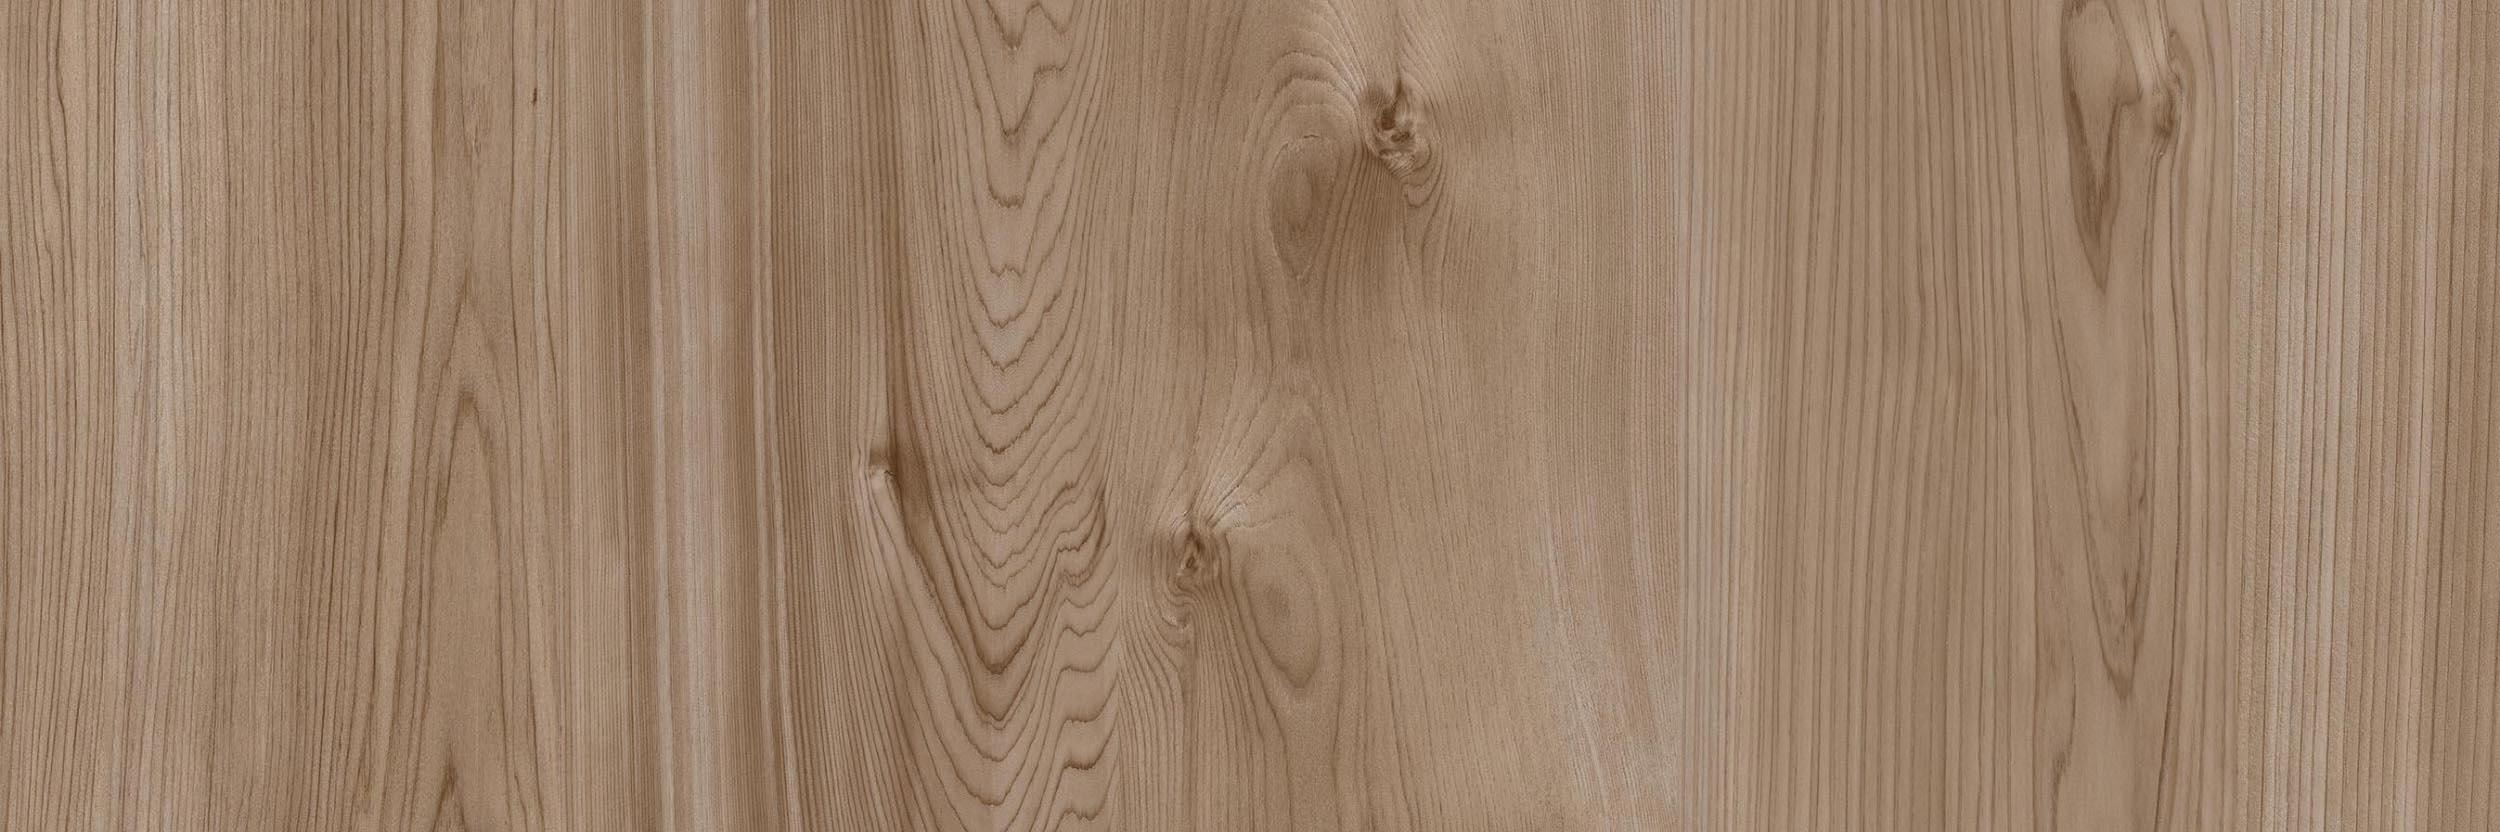 Quiet Hinoki Y0785 Laminate Countertops